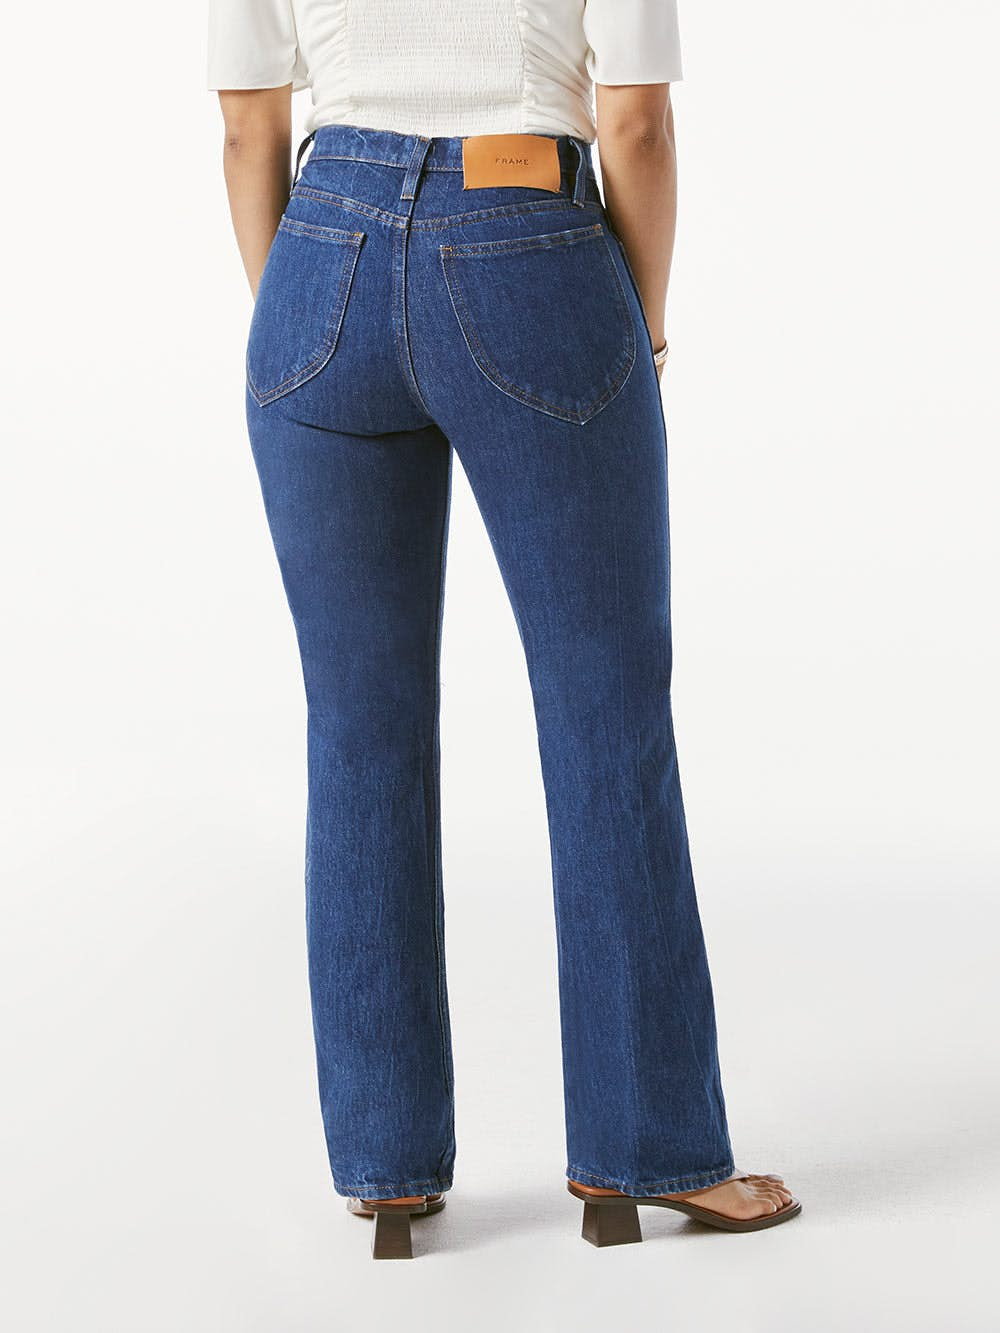 jeans back view